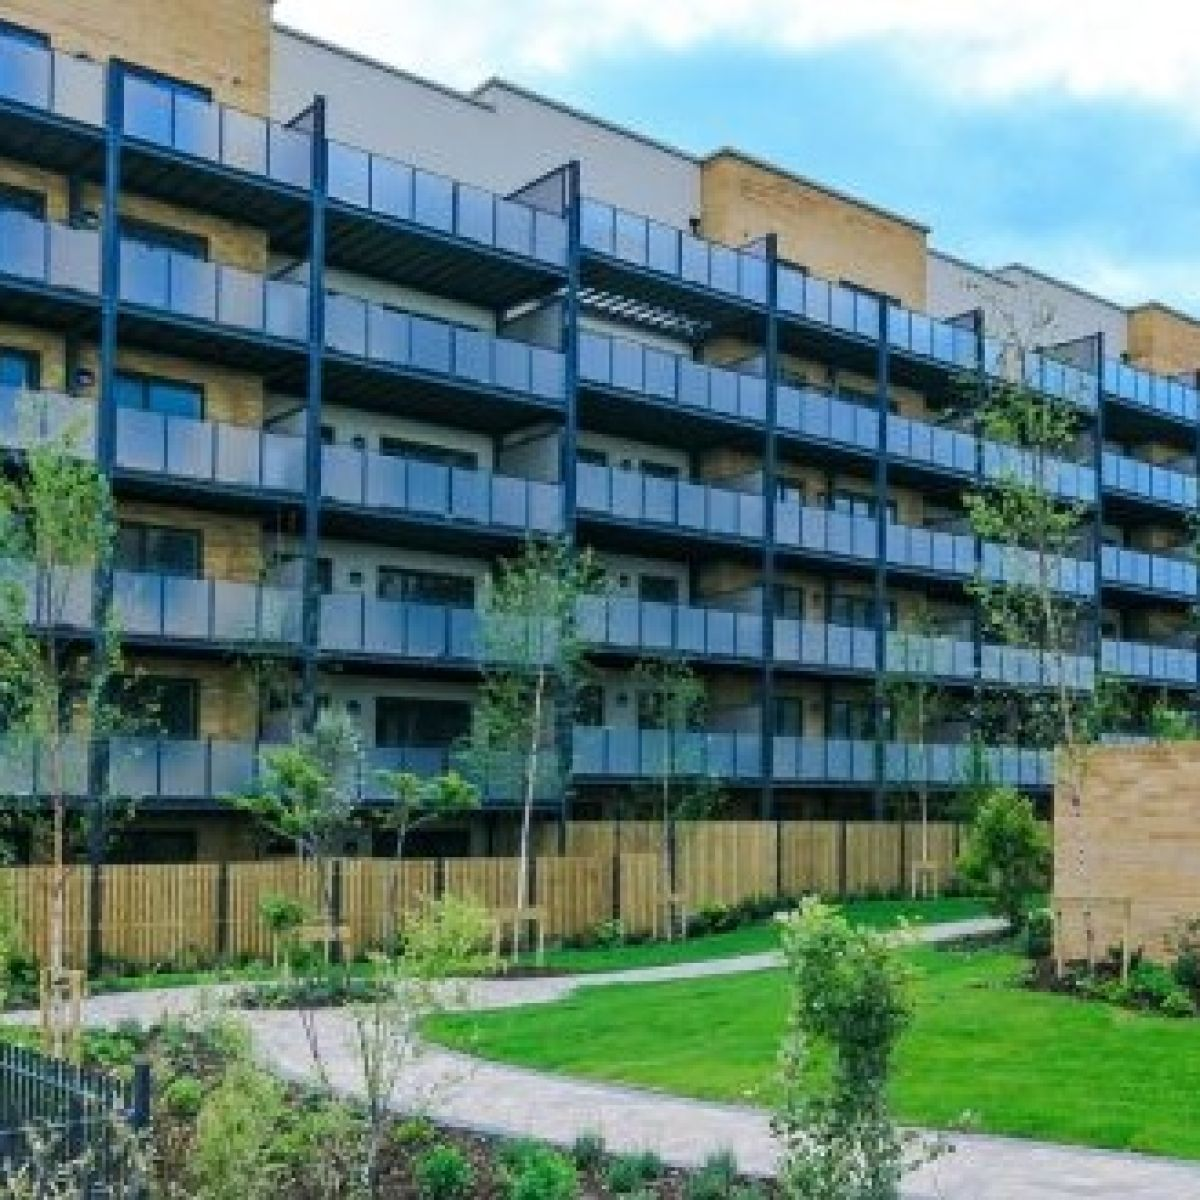 Rental income set to jump at Ireland's largest private landlord next